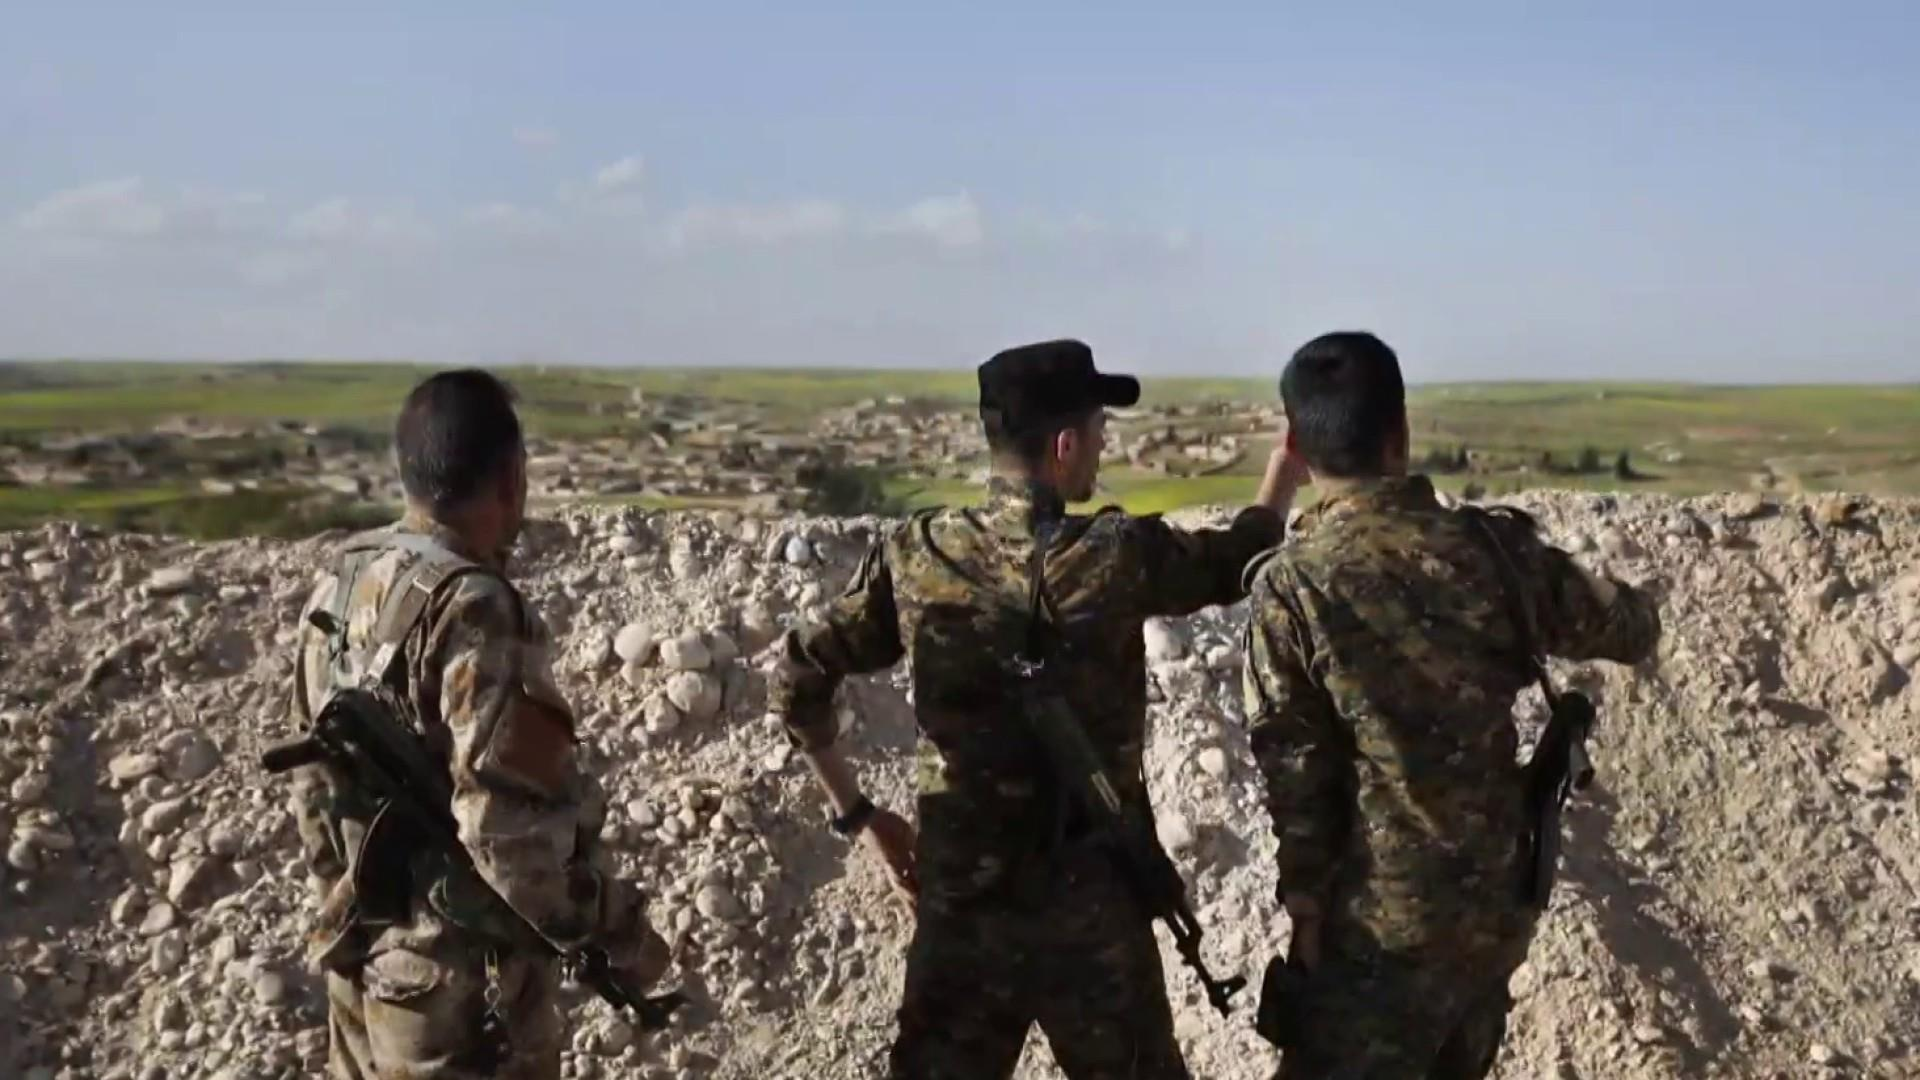 The impact of pulling U.S. troops from the Syria-Turkey border